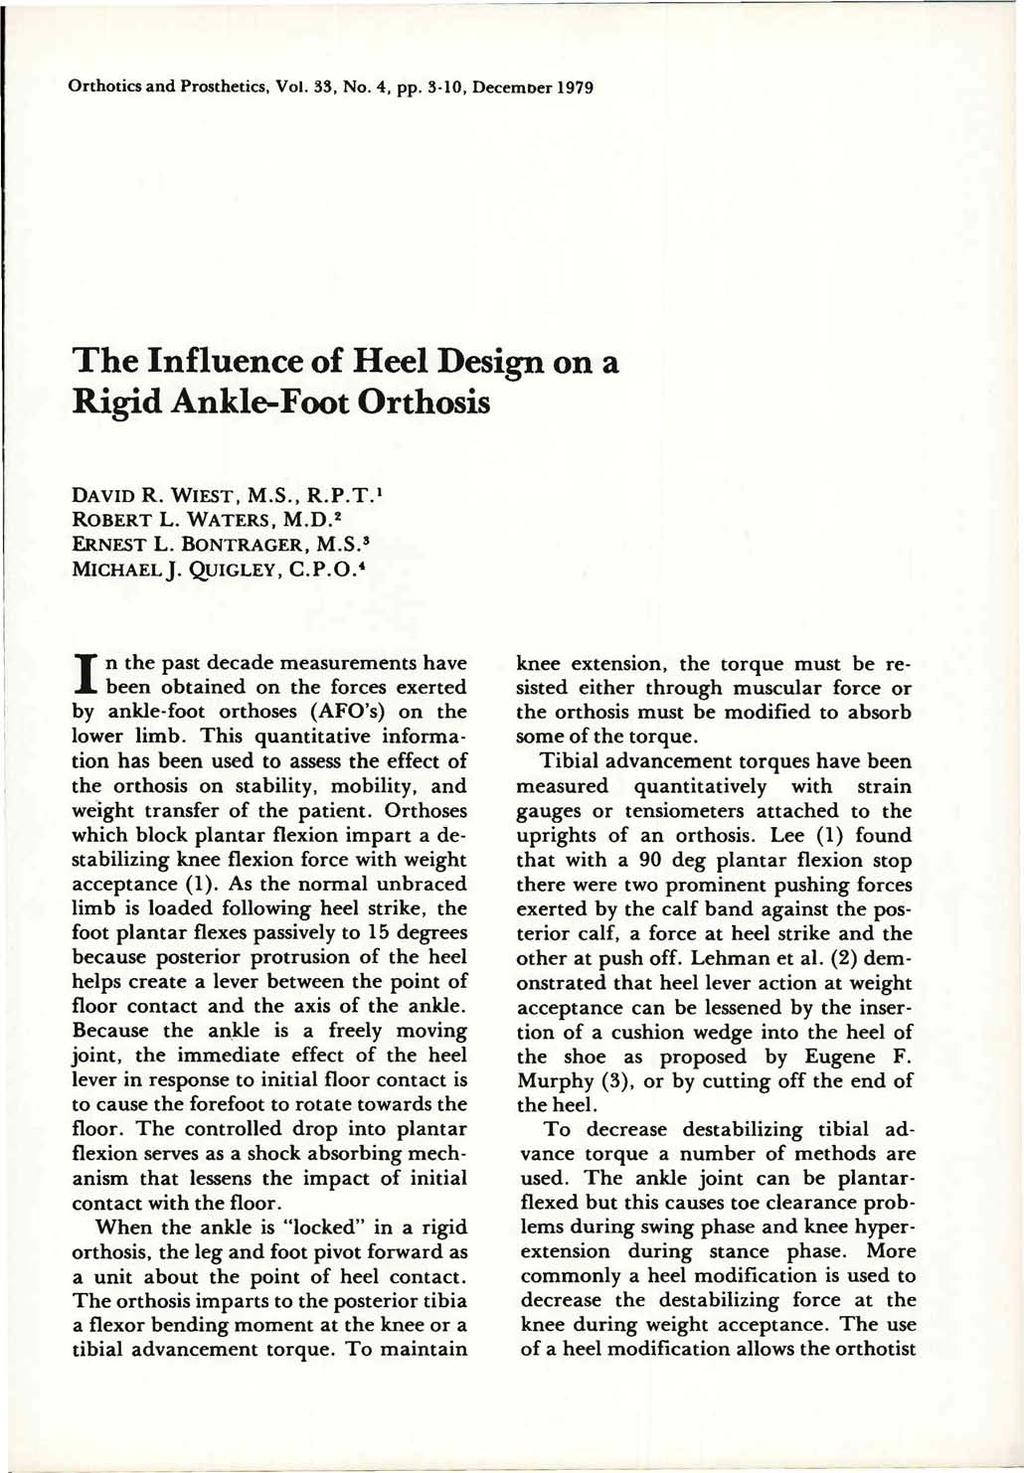 The Influence of Heel Design on a Rigid Ankle-Foot Orthosis DAVID R. WIEST, M.S., R.P.T. 1 ROBERT L. WATERS, M.D. 2 ERNEST L. BONTRAGER, M.S.3 MICHAEL J. QUIGLEY, C.P.O. 4 In the past decade measurements have been obtained on the forces exerted by ankle-foot orthoses (AFO's) on the lower limb.